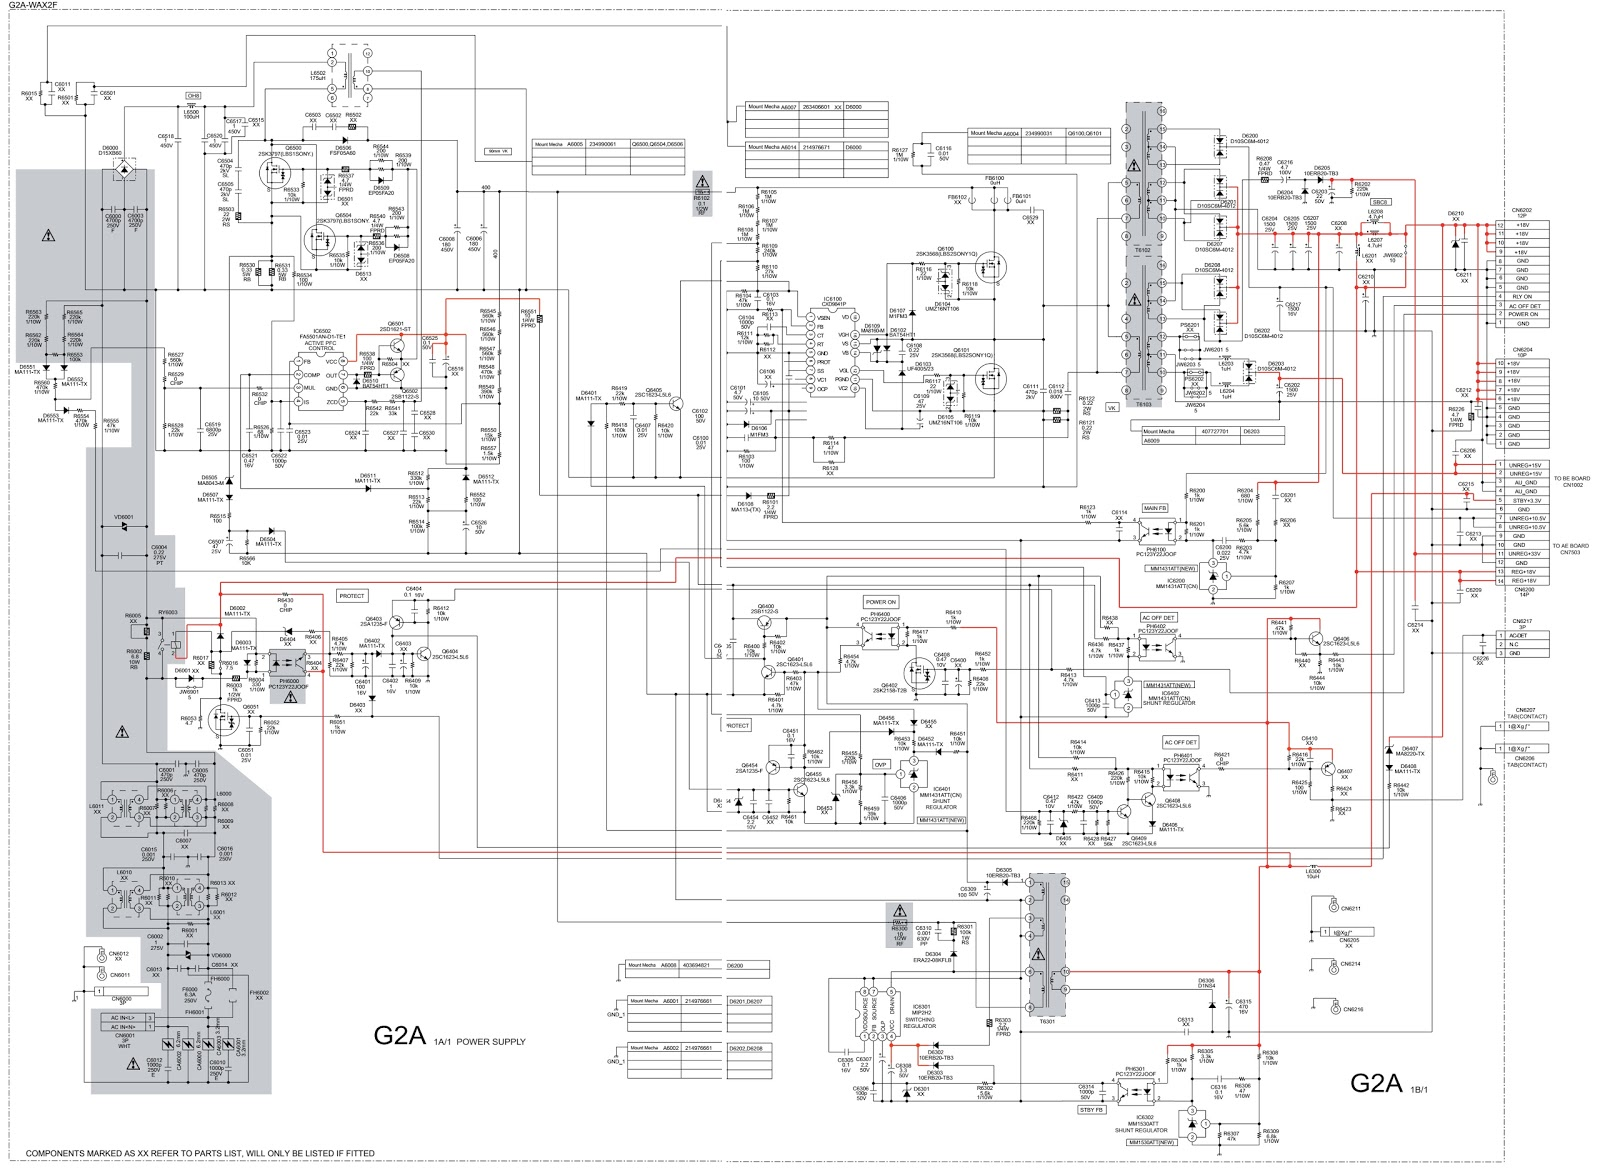 Lcd Tv Schematic Diagrams | Best Wiring Liry Sony Tv Wiring Schematic on design schematics, wire schematics, tube amp schematics, plumbing schematics, amplifier schematics, transformer schematics, engineering schematics, electronics schematics, generator schematics, transmission schematics, computer schematics, engine schematics, ecu schematics, electrical schematics, circuit schematics, piping schematics, ductwork schematics, ford diagrams schematics, ignition schematics, motor schematics,